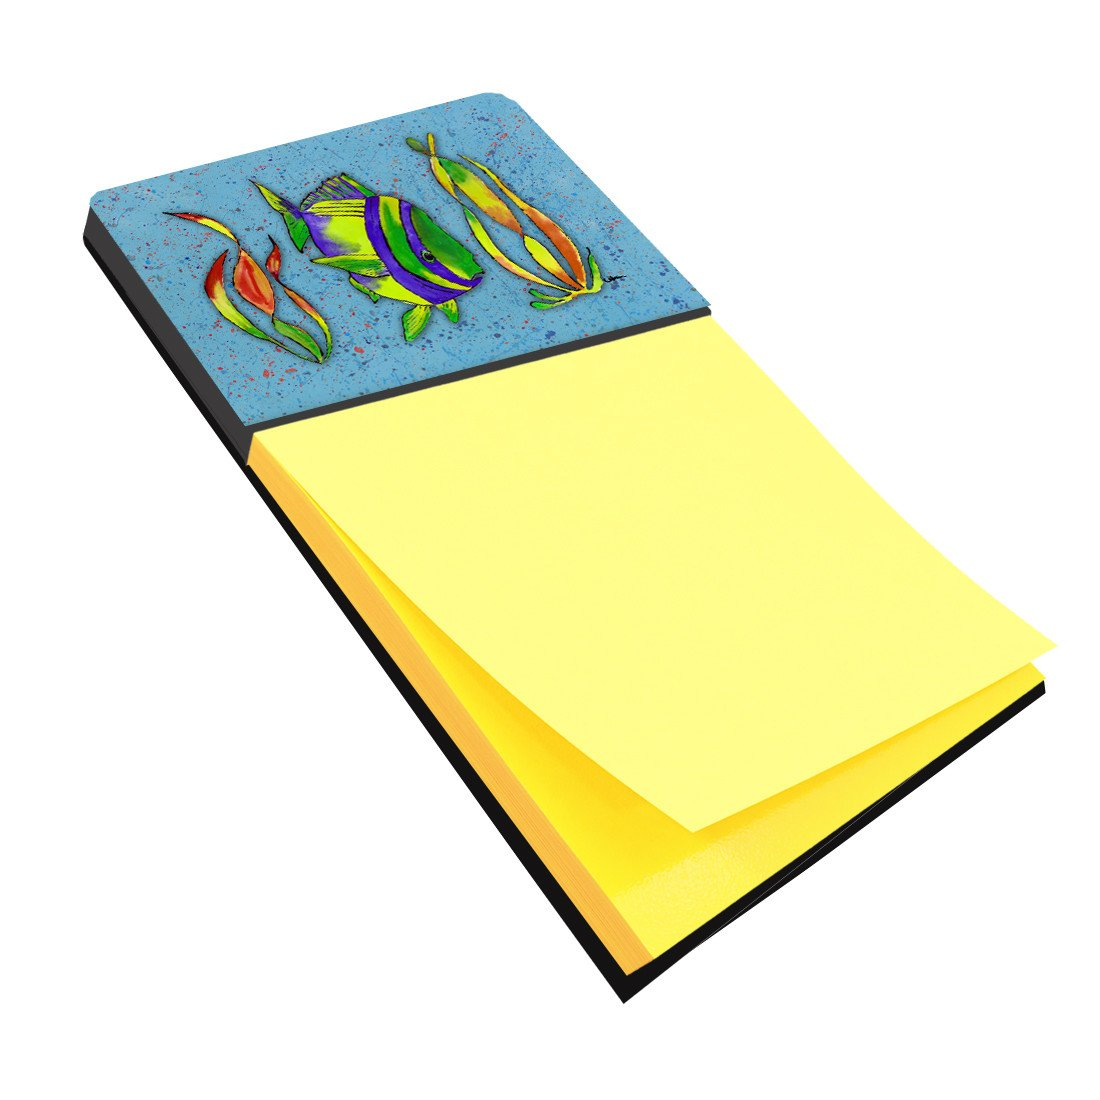 Tropical Fish on Blue Refiillable Sticky Note Holder or Postit Note Dispenser 8570SN by Caroline's Treasures